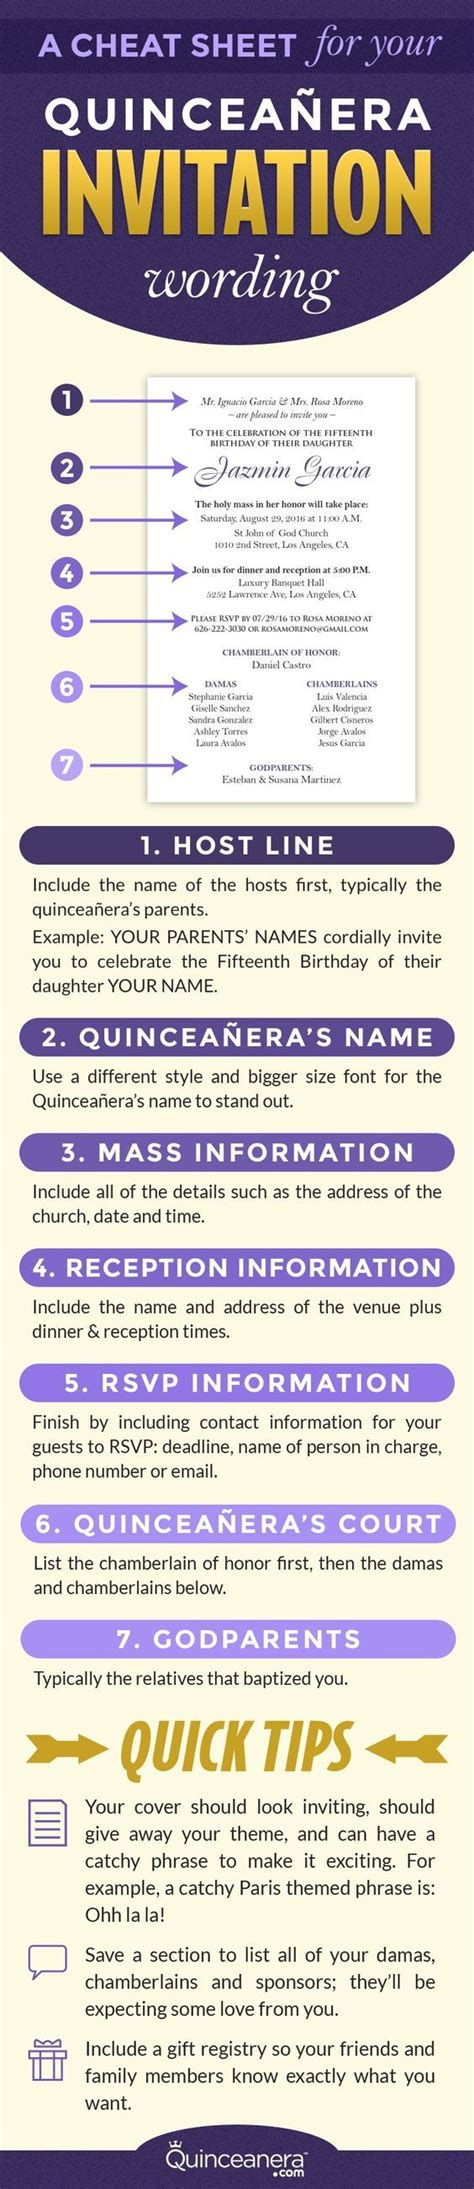 A Cheat Sheet for your Quinceanera Invitation Wording